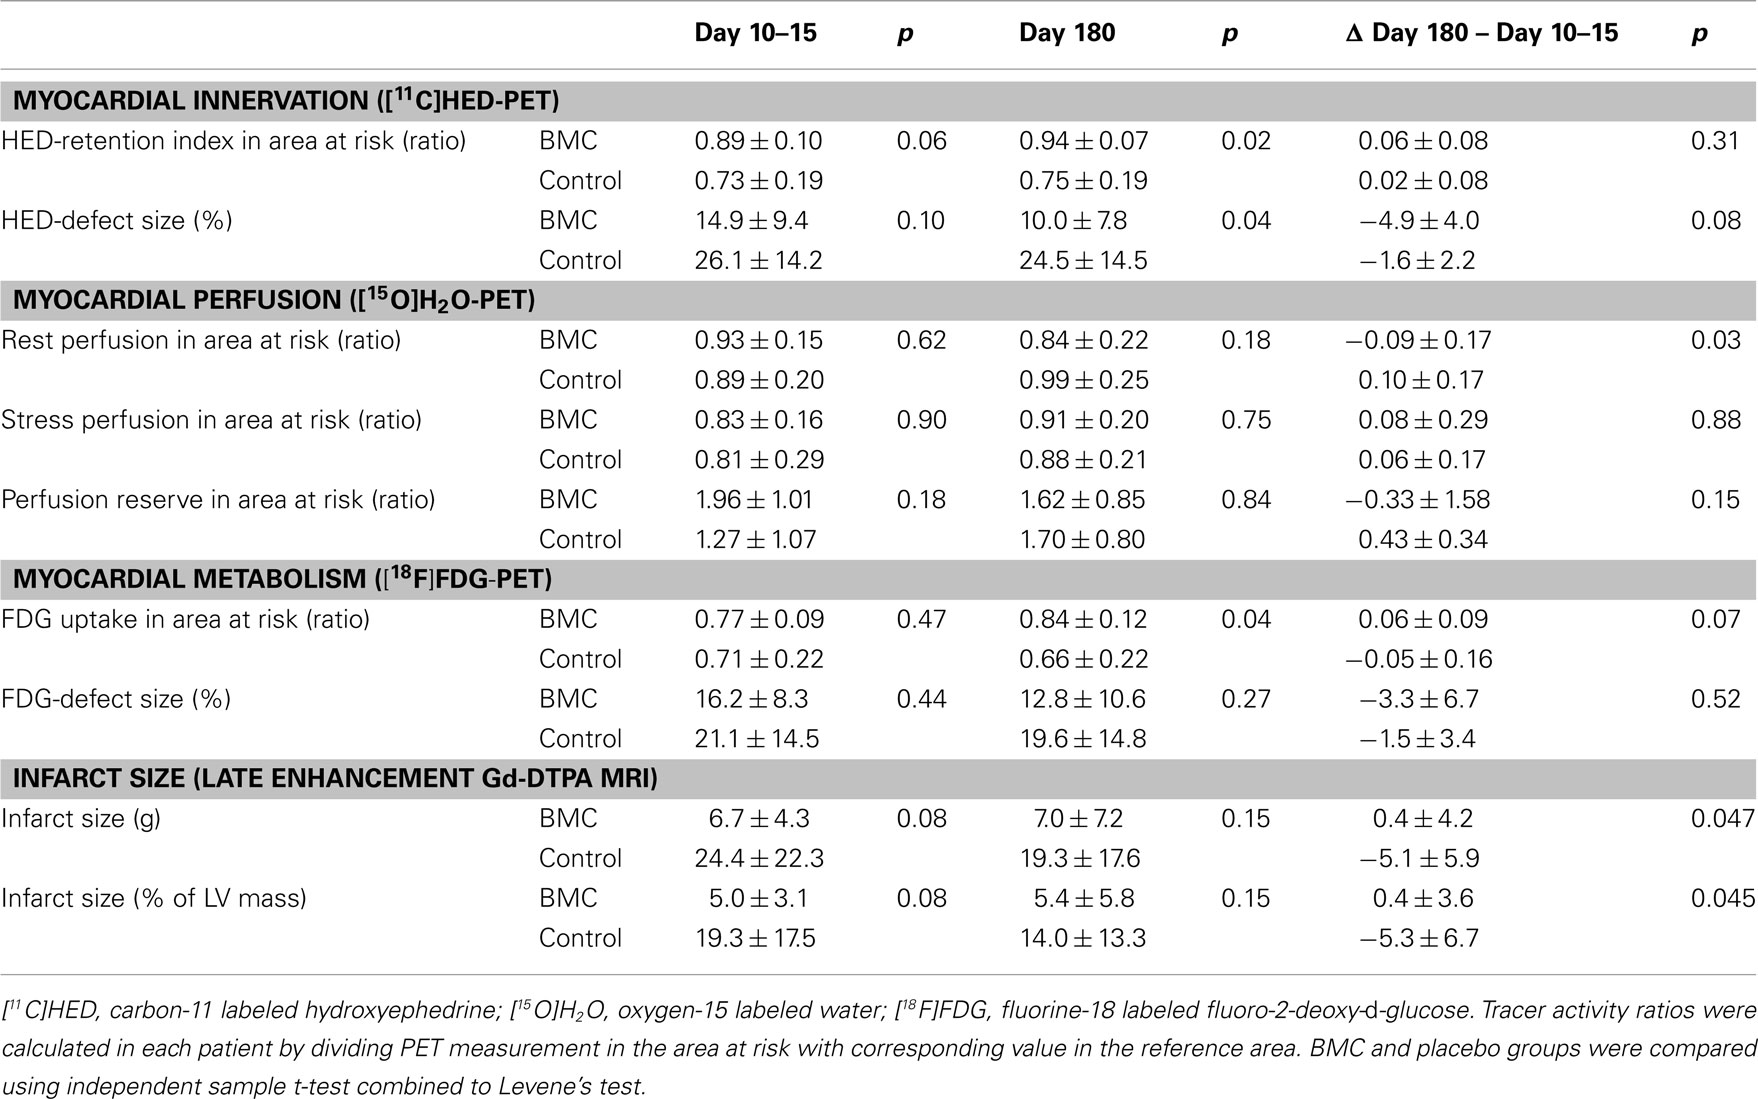 Preoperative exercise therapy for gastrointestinal cancer patients: a systematic review